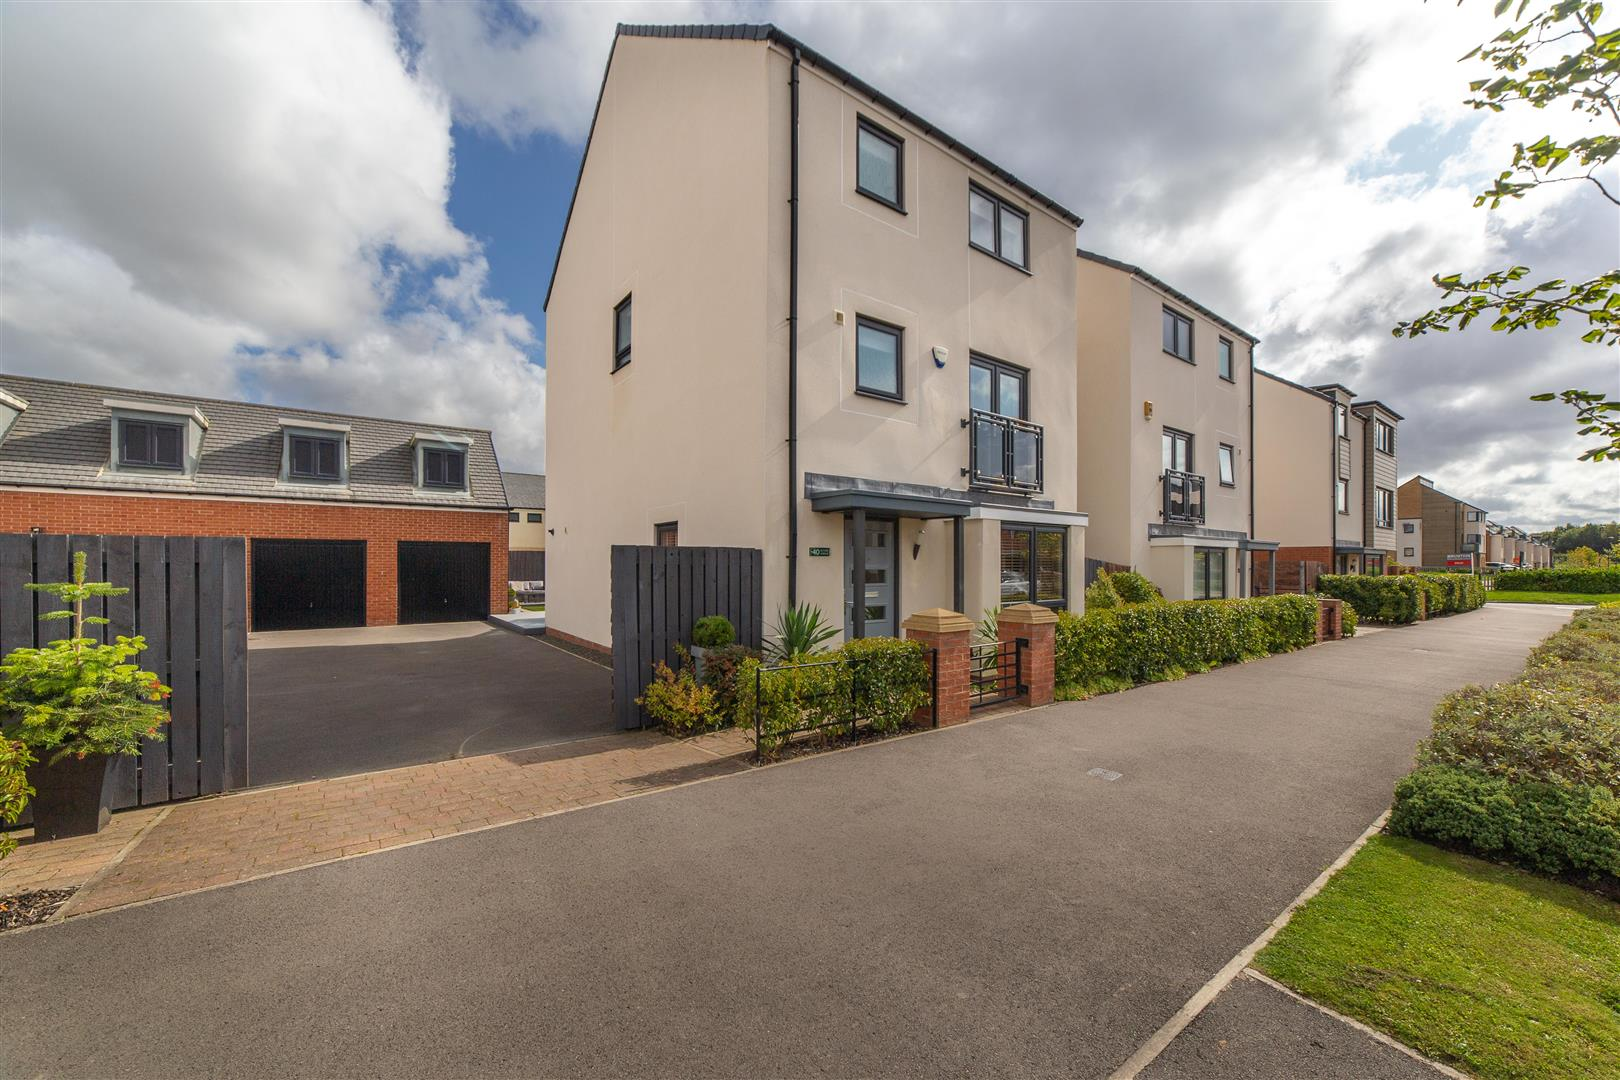 4 bed detached house for sale in Elford Avenue, Great Park - Property Image 1